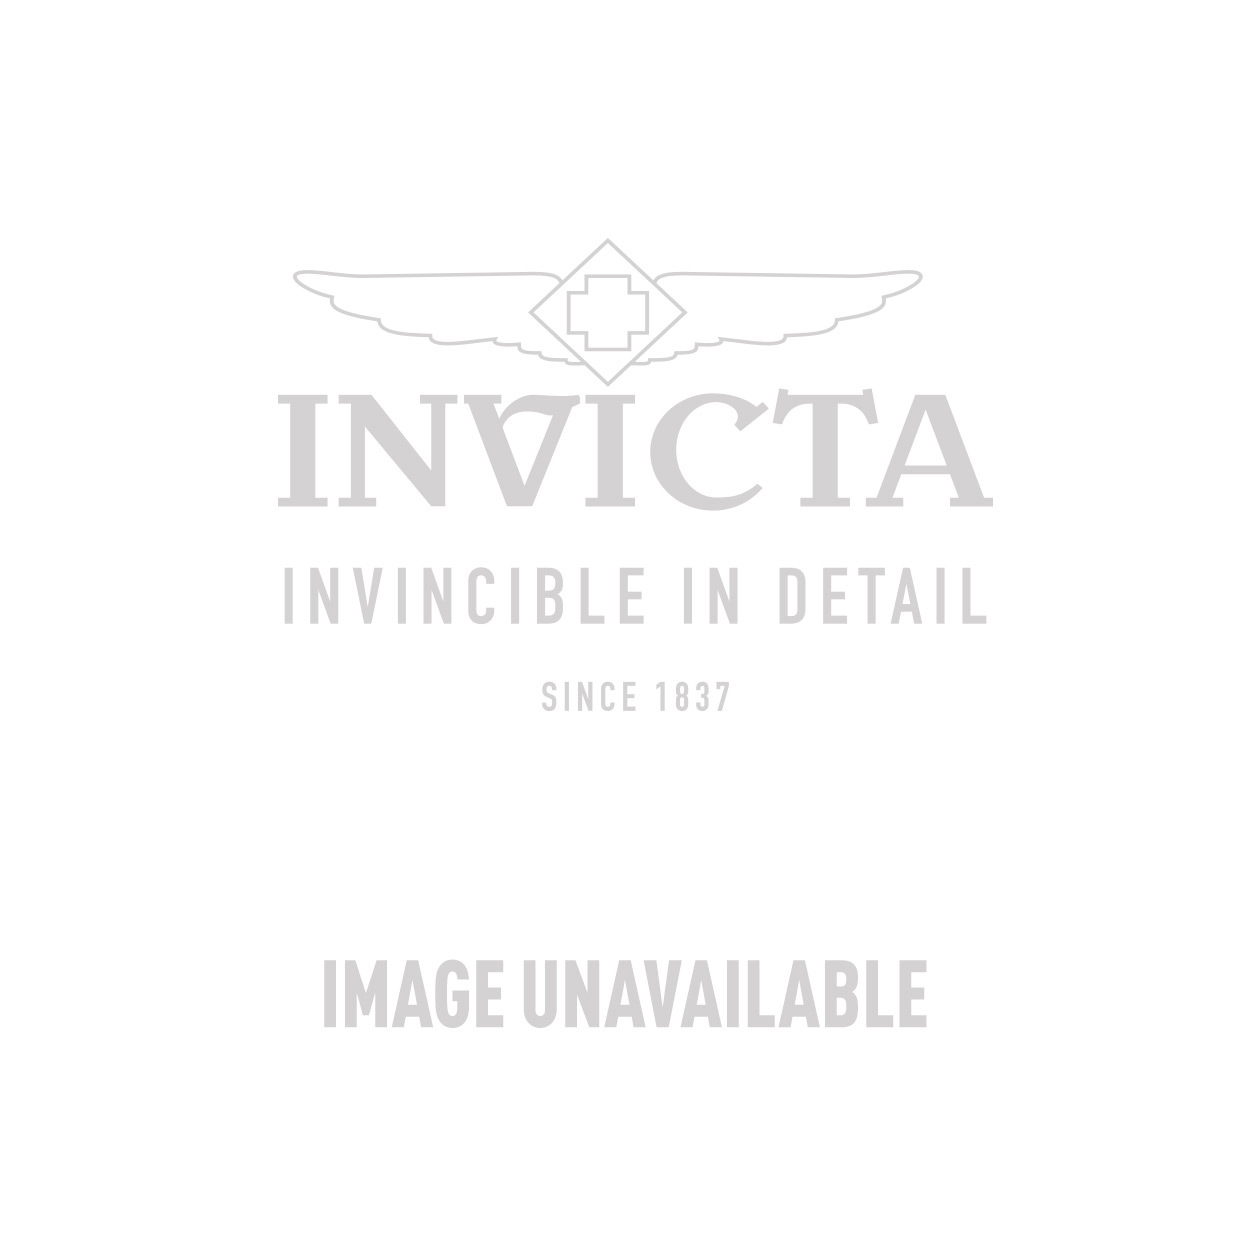 Invicta Corduba Swiss Movement Quartz Watch - Stainless Steel case with Steel, Blue tone Stainless Steel, Polyurethane band - Model 19233